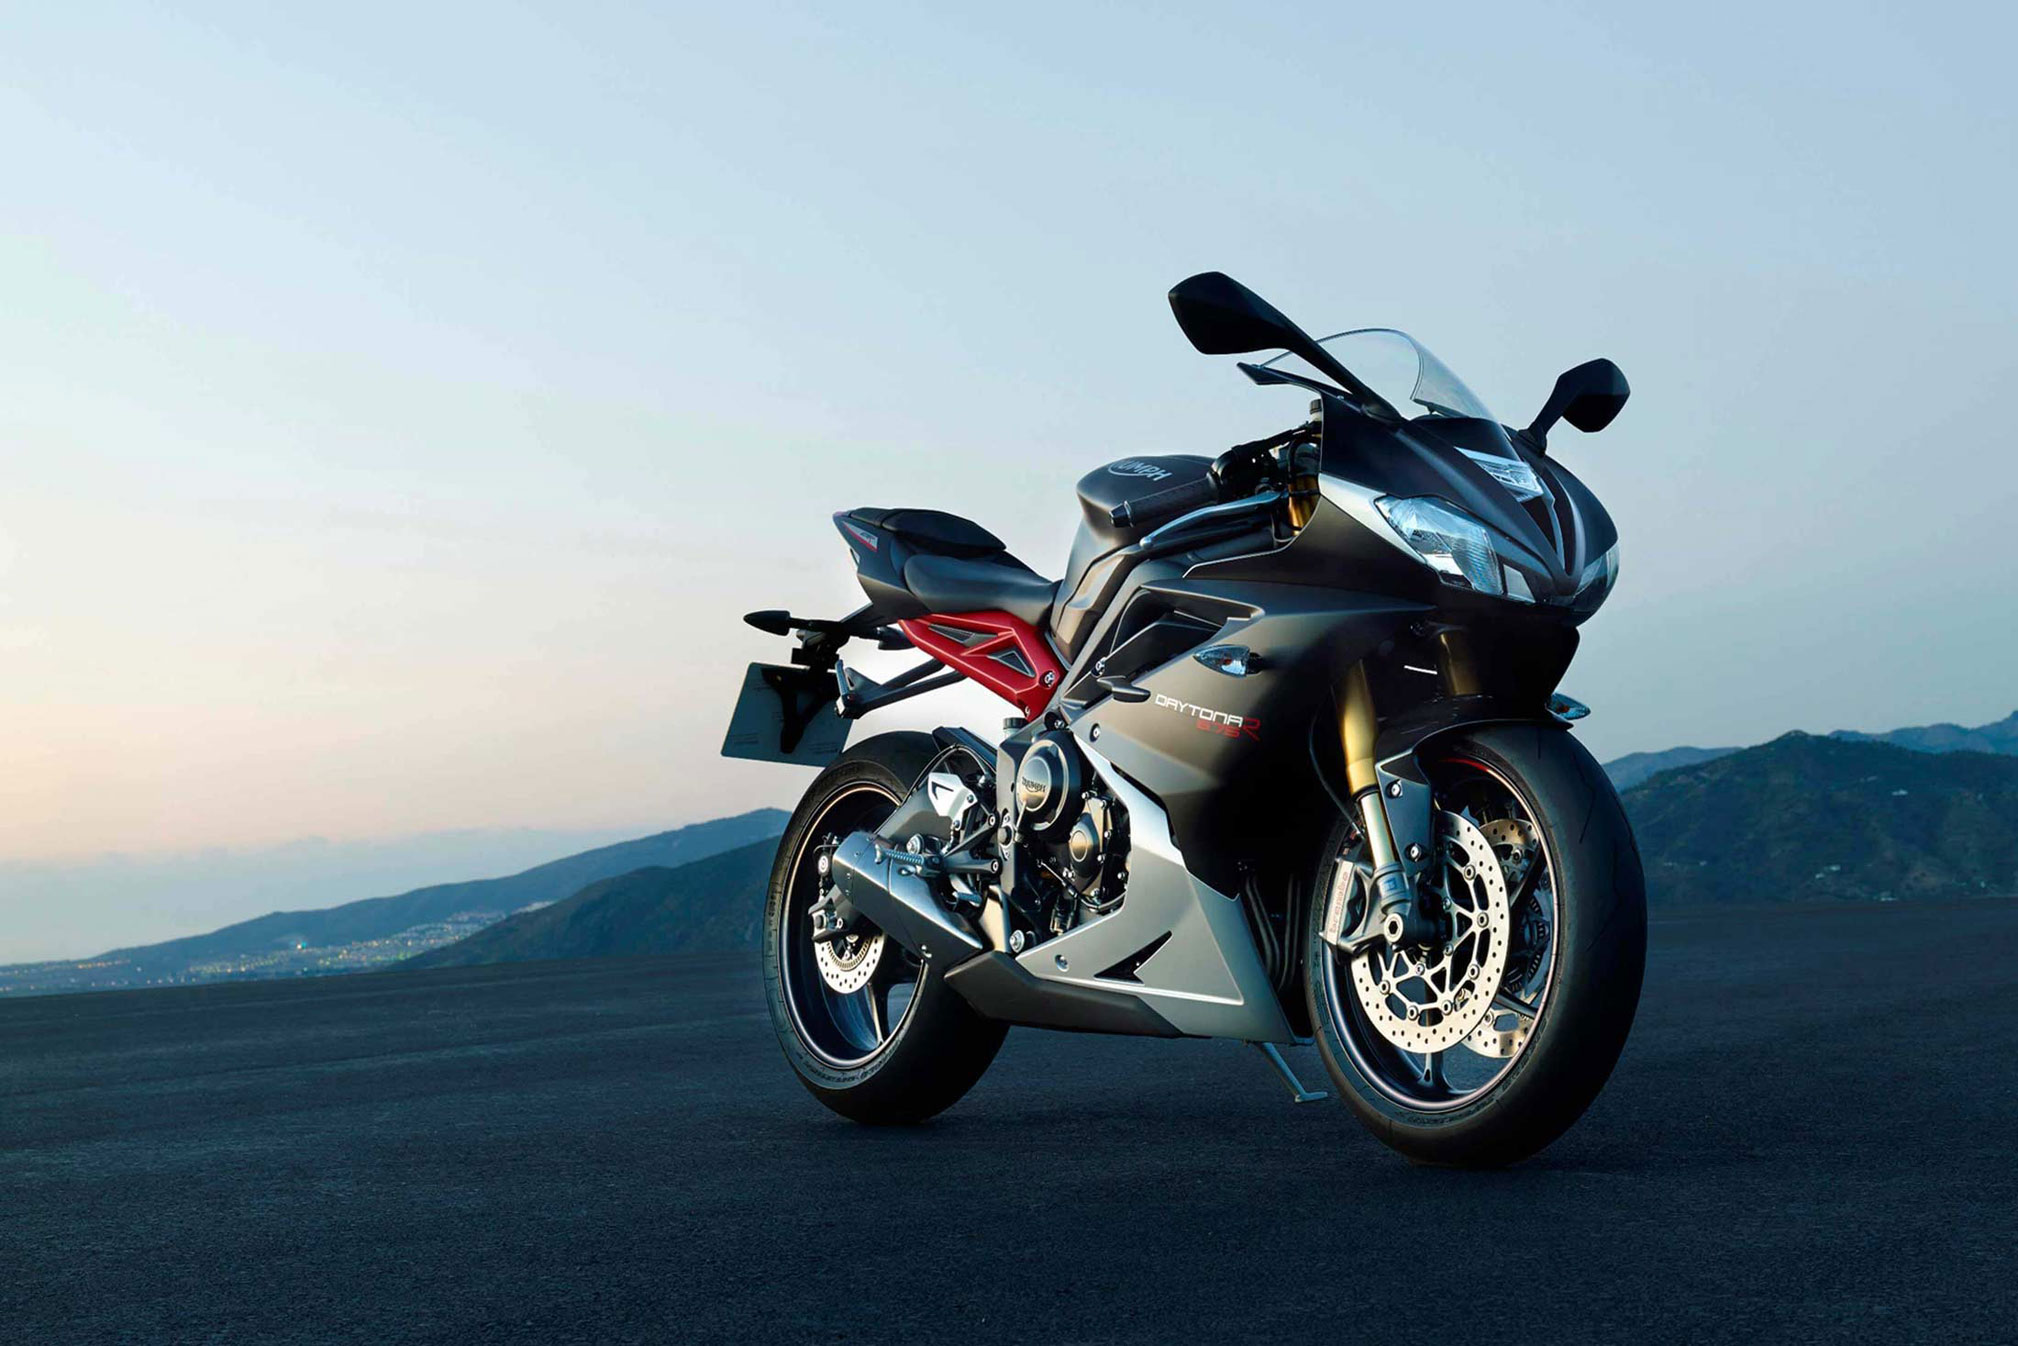 2018 Triumph Daytona 675r Review Total Motorcycle